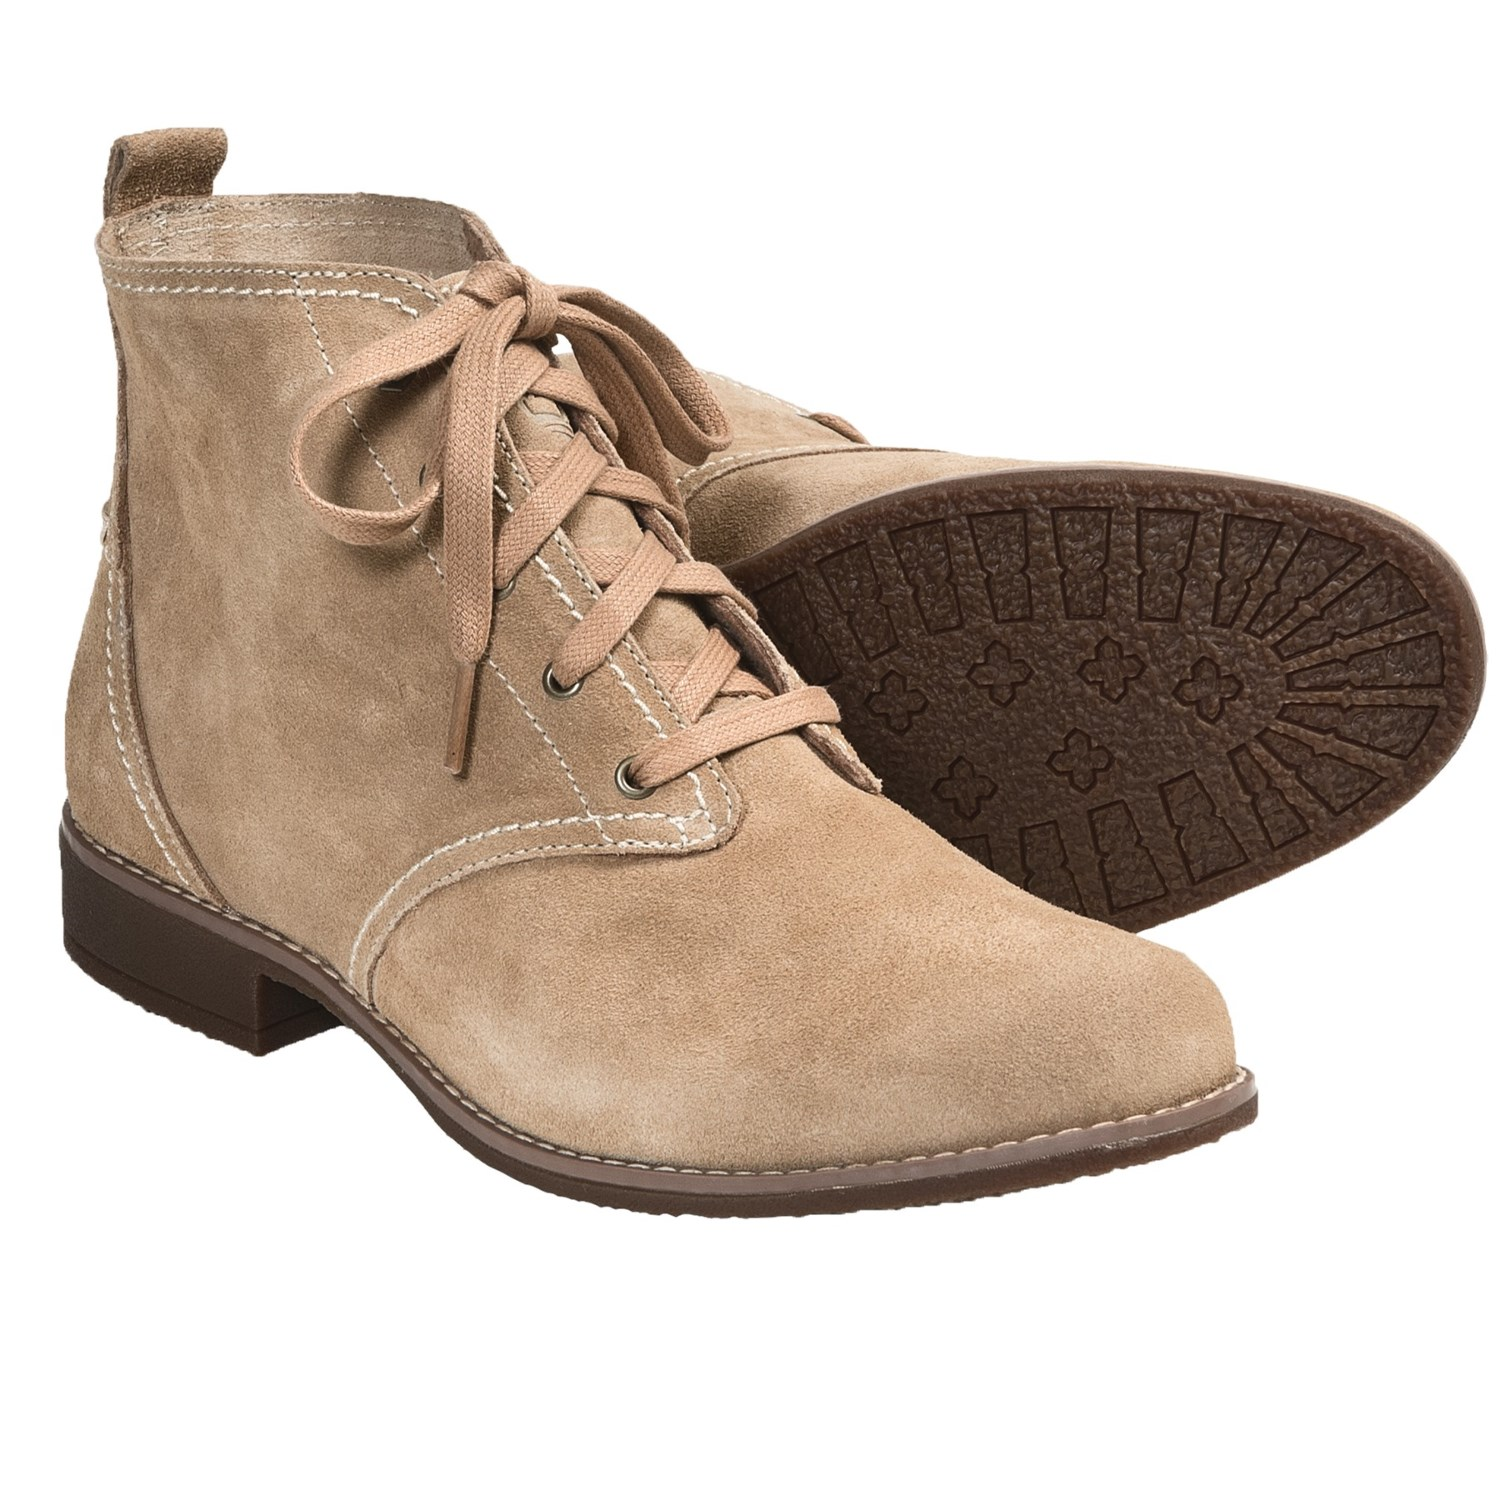 Timberland Earthkeepers Shoreham Desert Boots (For Women) in Tan Suede